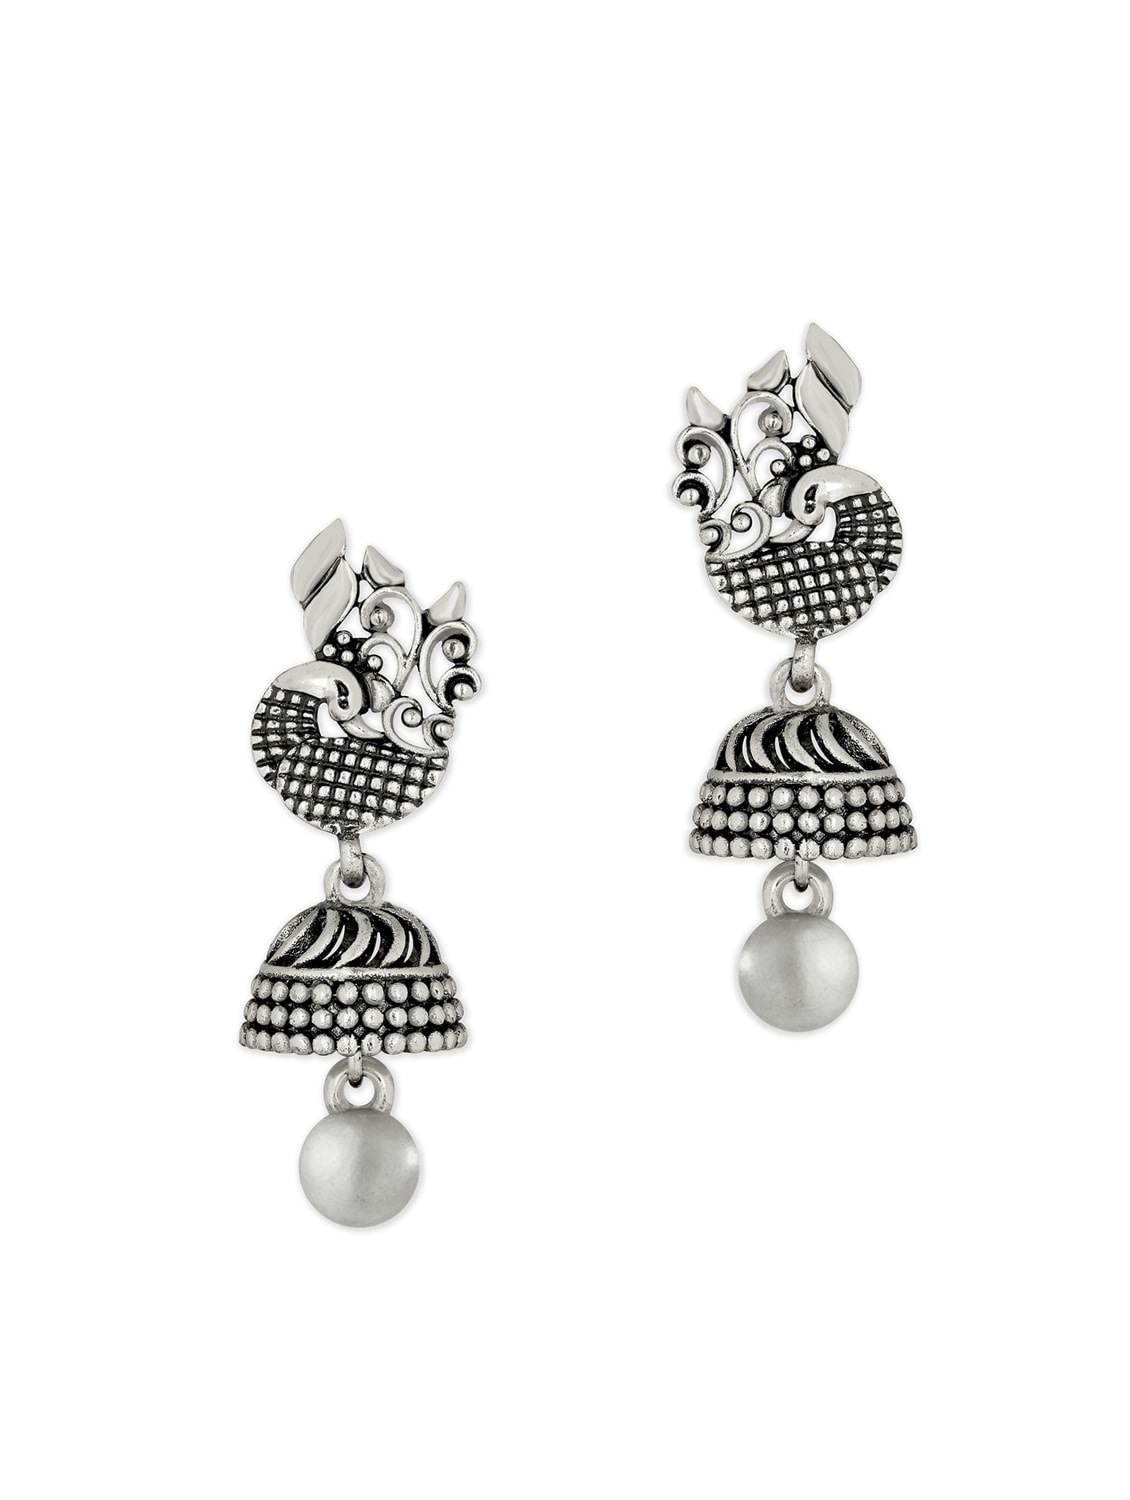 bec404aa7 Buy Silver Metal Jhumka Earring for Women from Spargz for ₹309 at 70% off |  2019 Limeroad.com